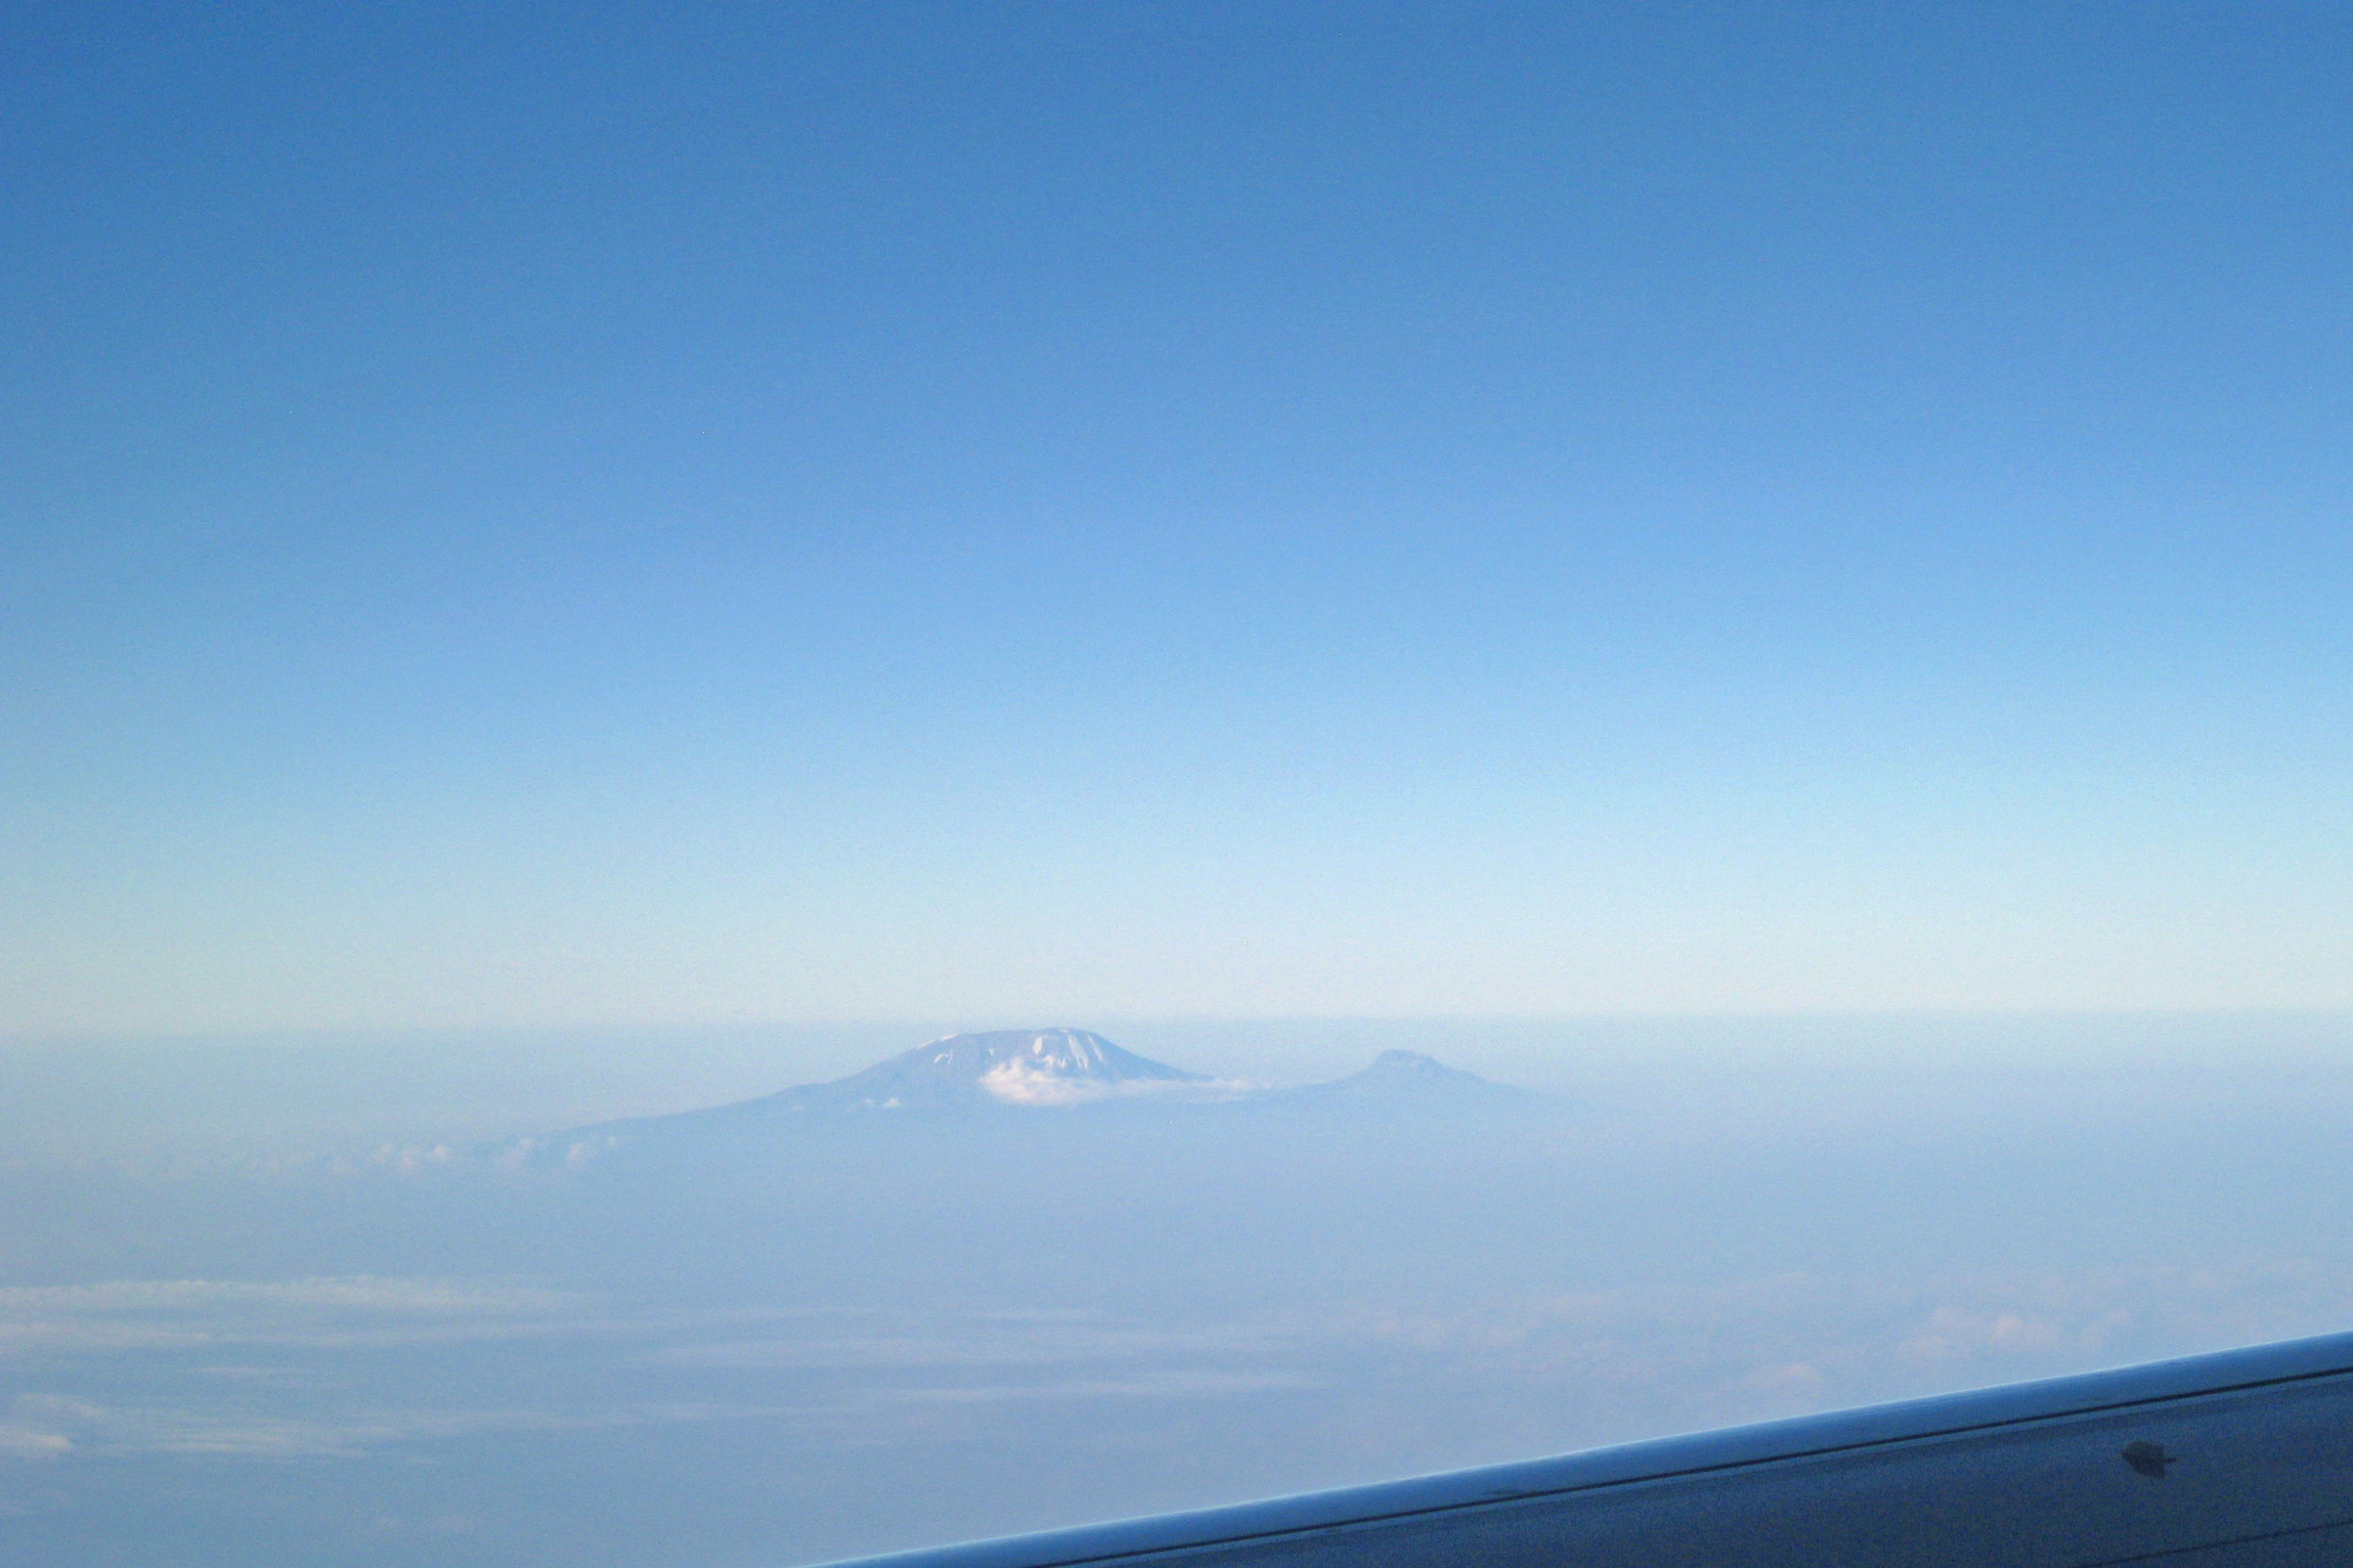 Mount Kiliminjaro on the flight from Lilongwe, Malawi to Addis Ababa, Ethiopia.